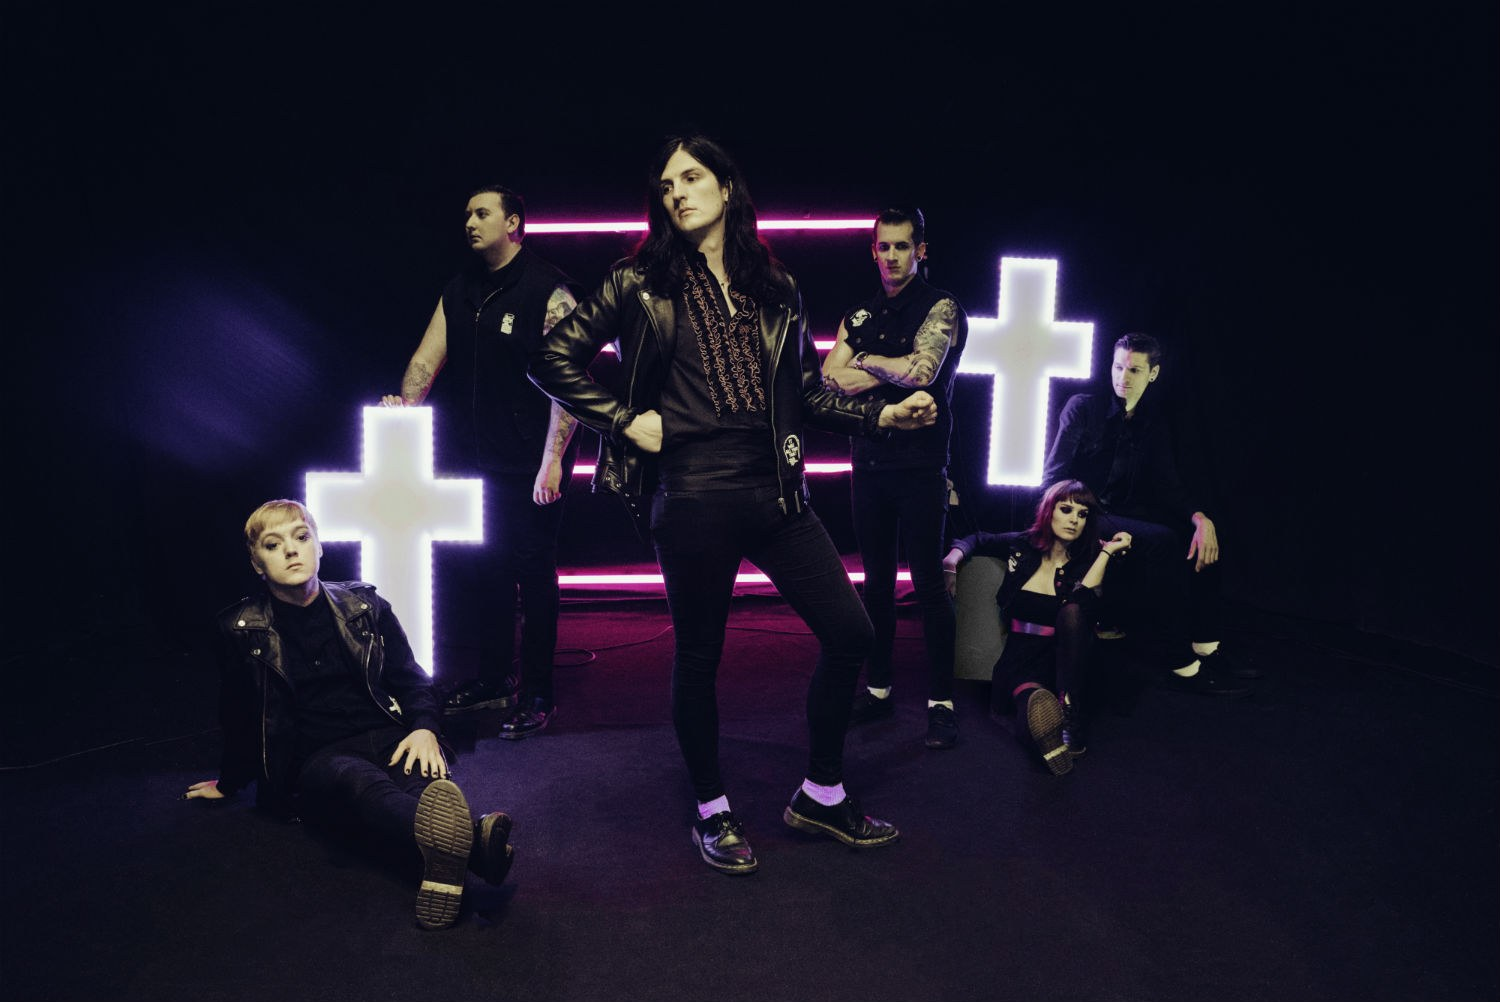 Creeper goth up Valentine's Day with 'Black Rain'